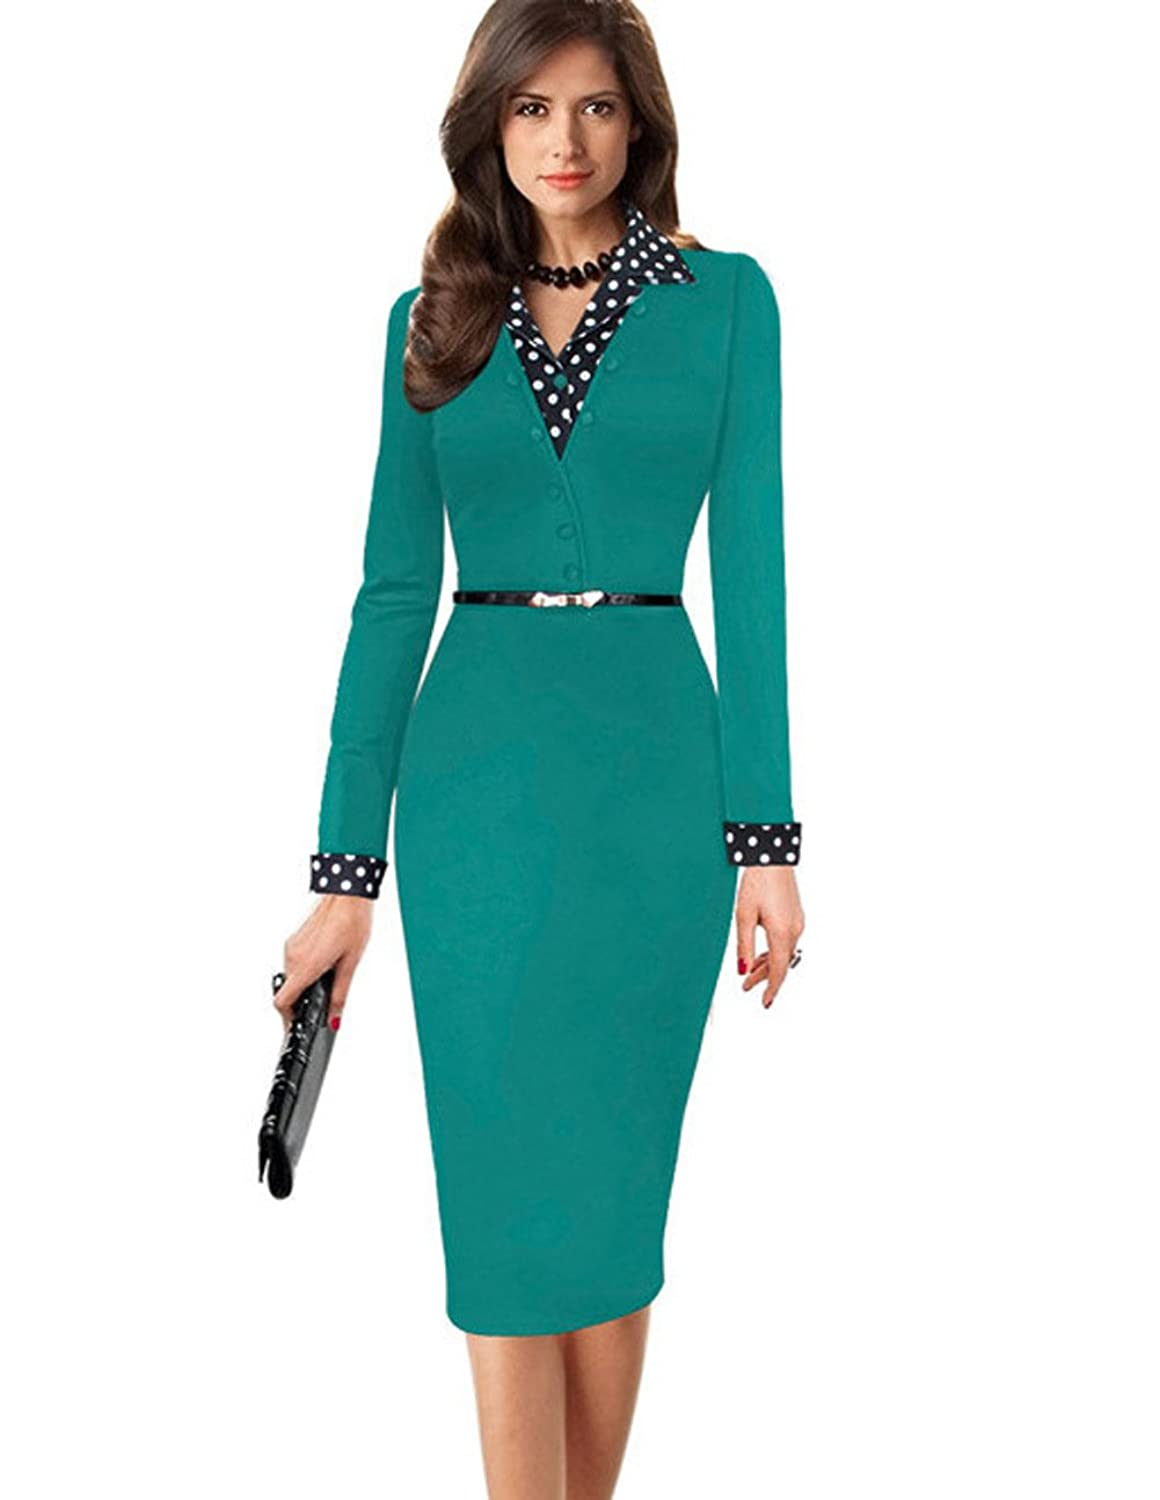 OU GRID Women's Long Sleeve Polka Dots Patchwork Bodycon Pencil Dress with Belt